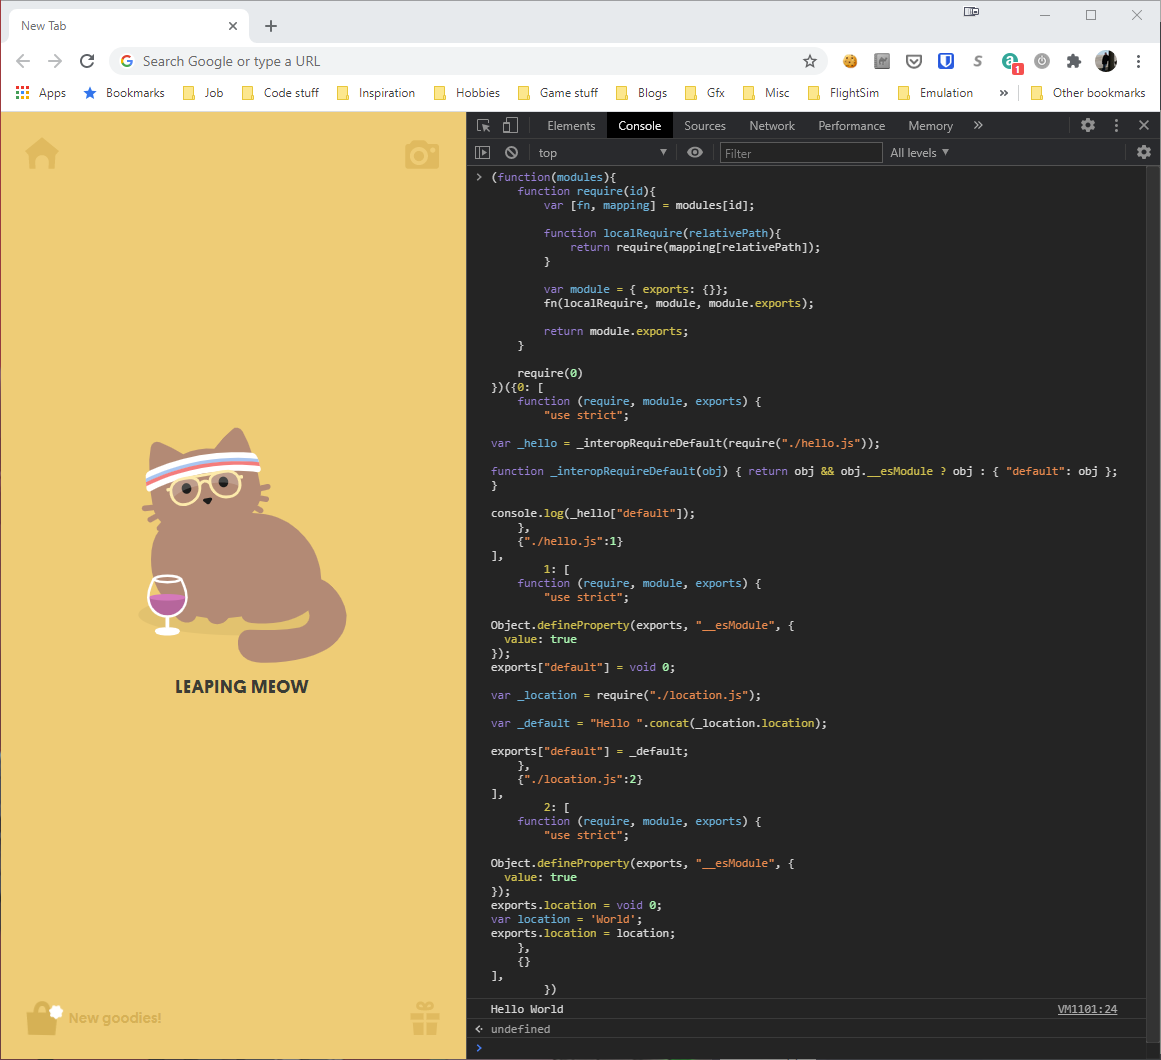 Showing our bundled code in the Developer console in Chrome